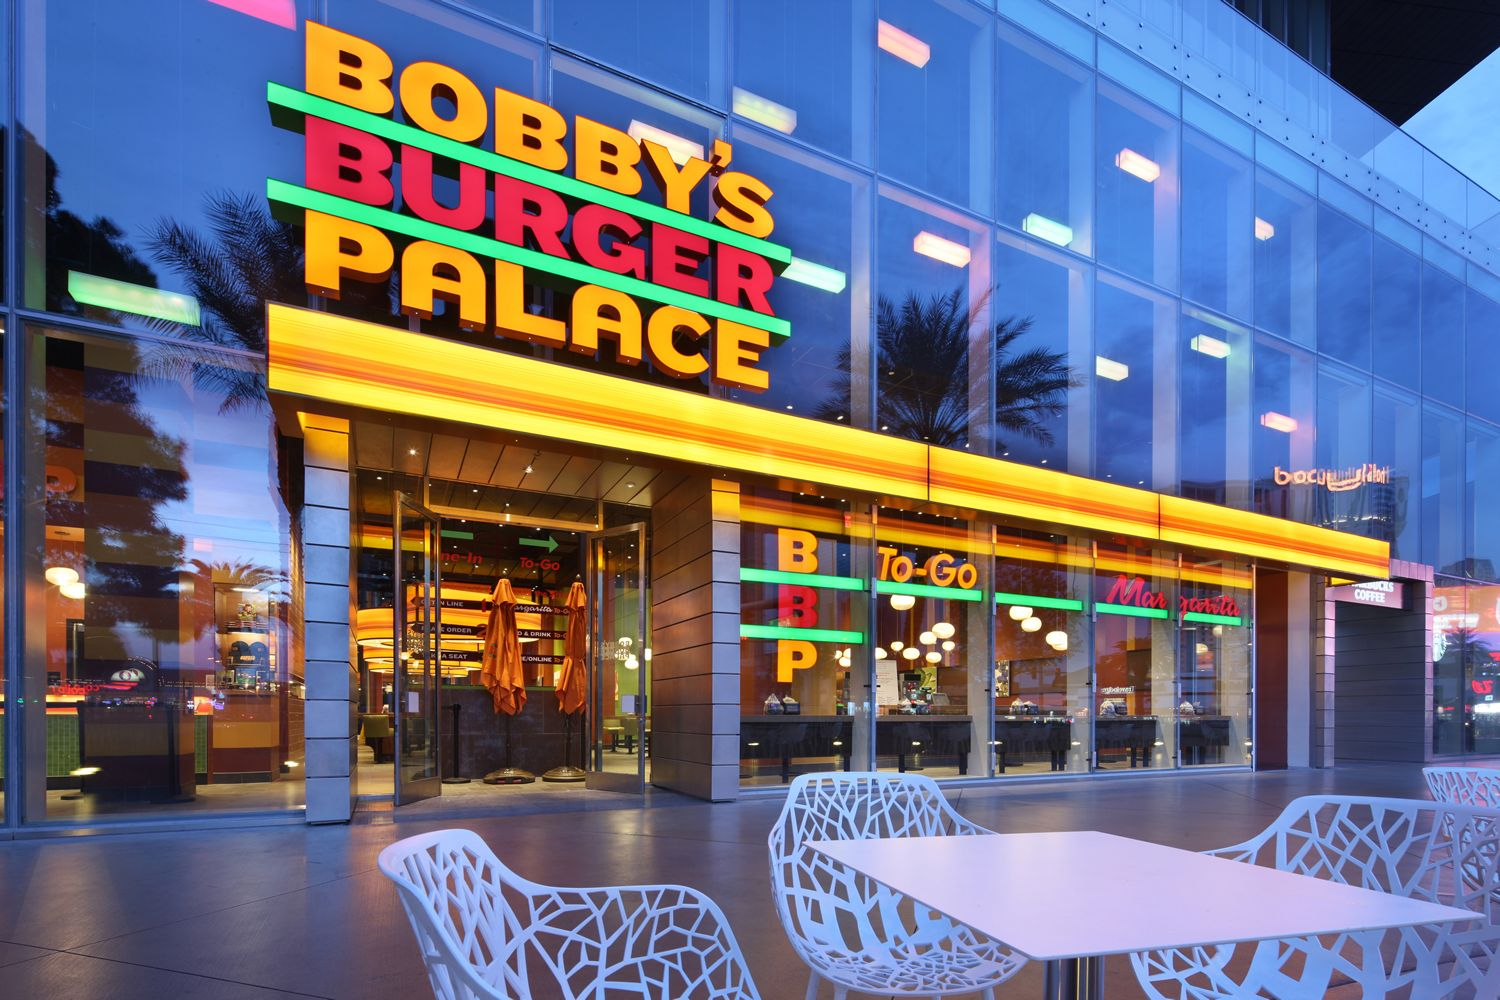 Bobby's Burger Palace Menu Prices